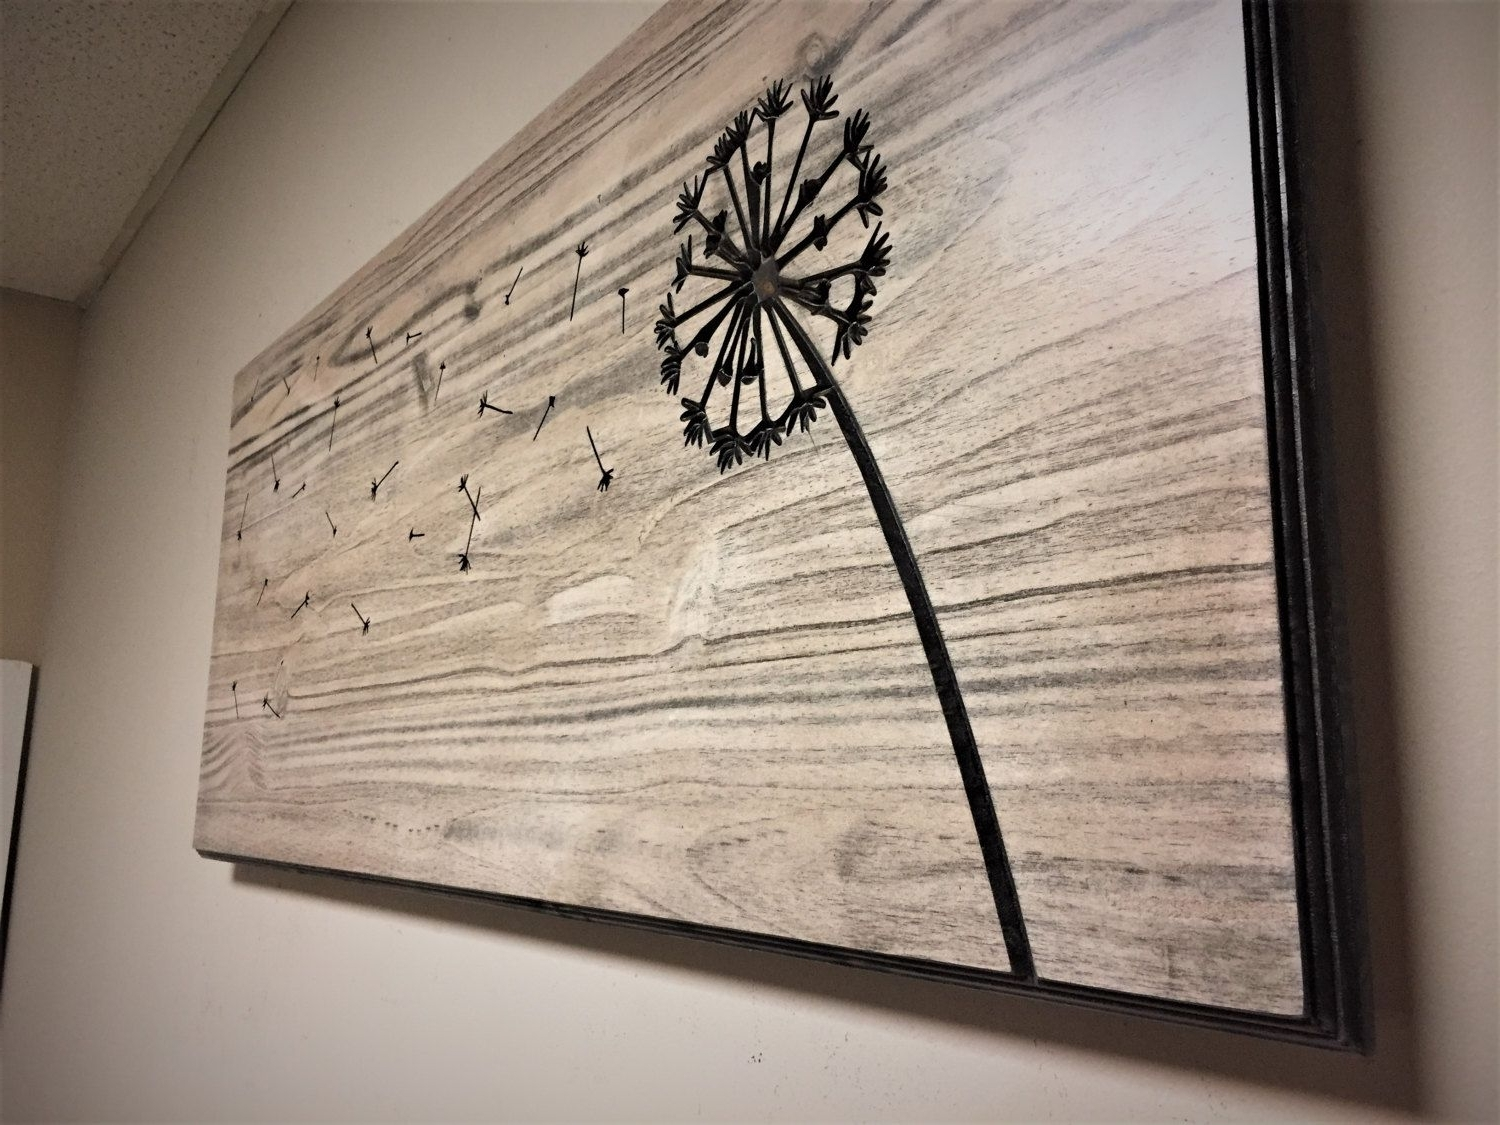 2018 Dandelion Wall Art, Carved, Wood Wall Art, Home Decorhowdyowl On Pertaining To Dandelion Wall Art (View 1 of 20)